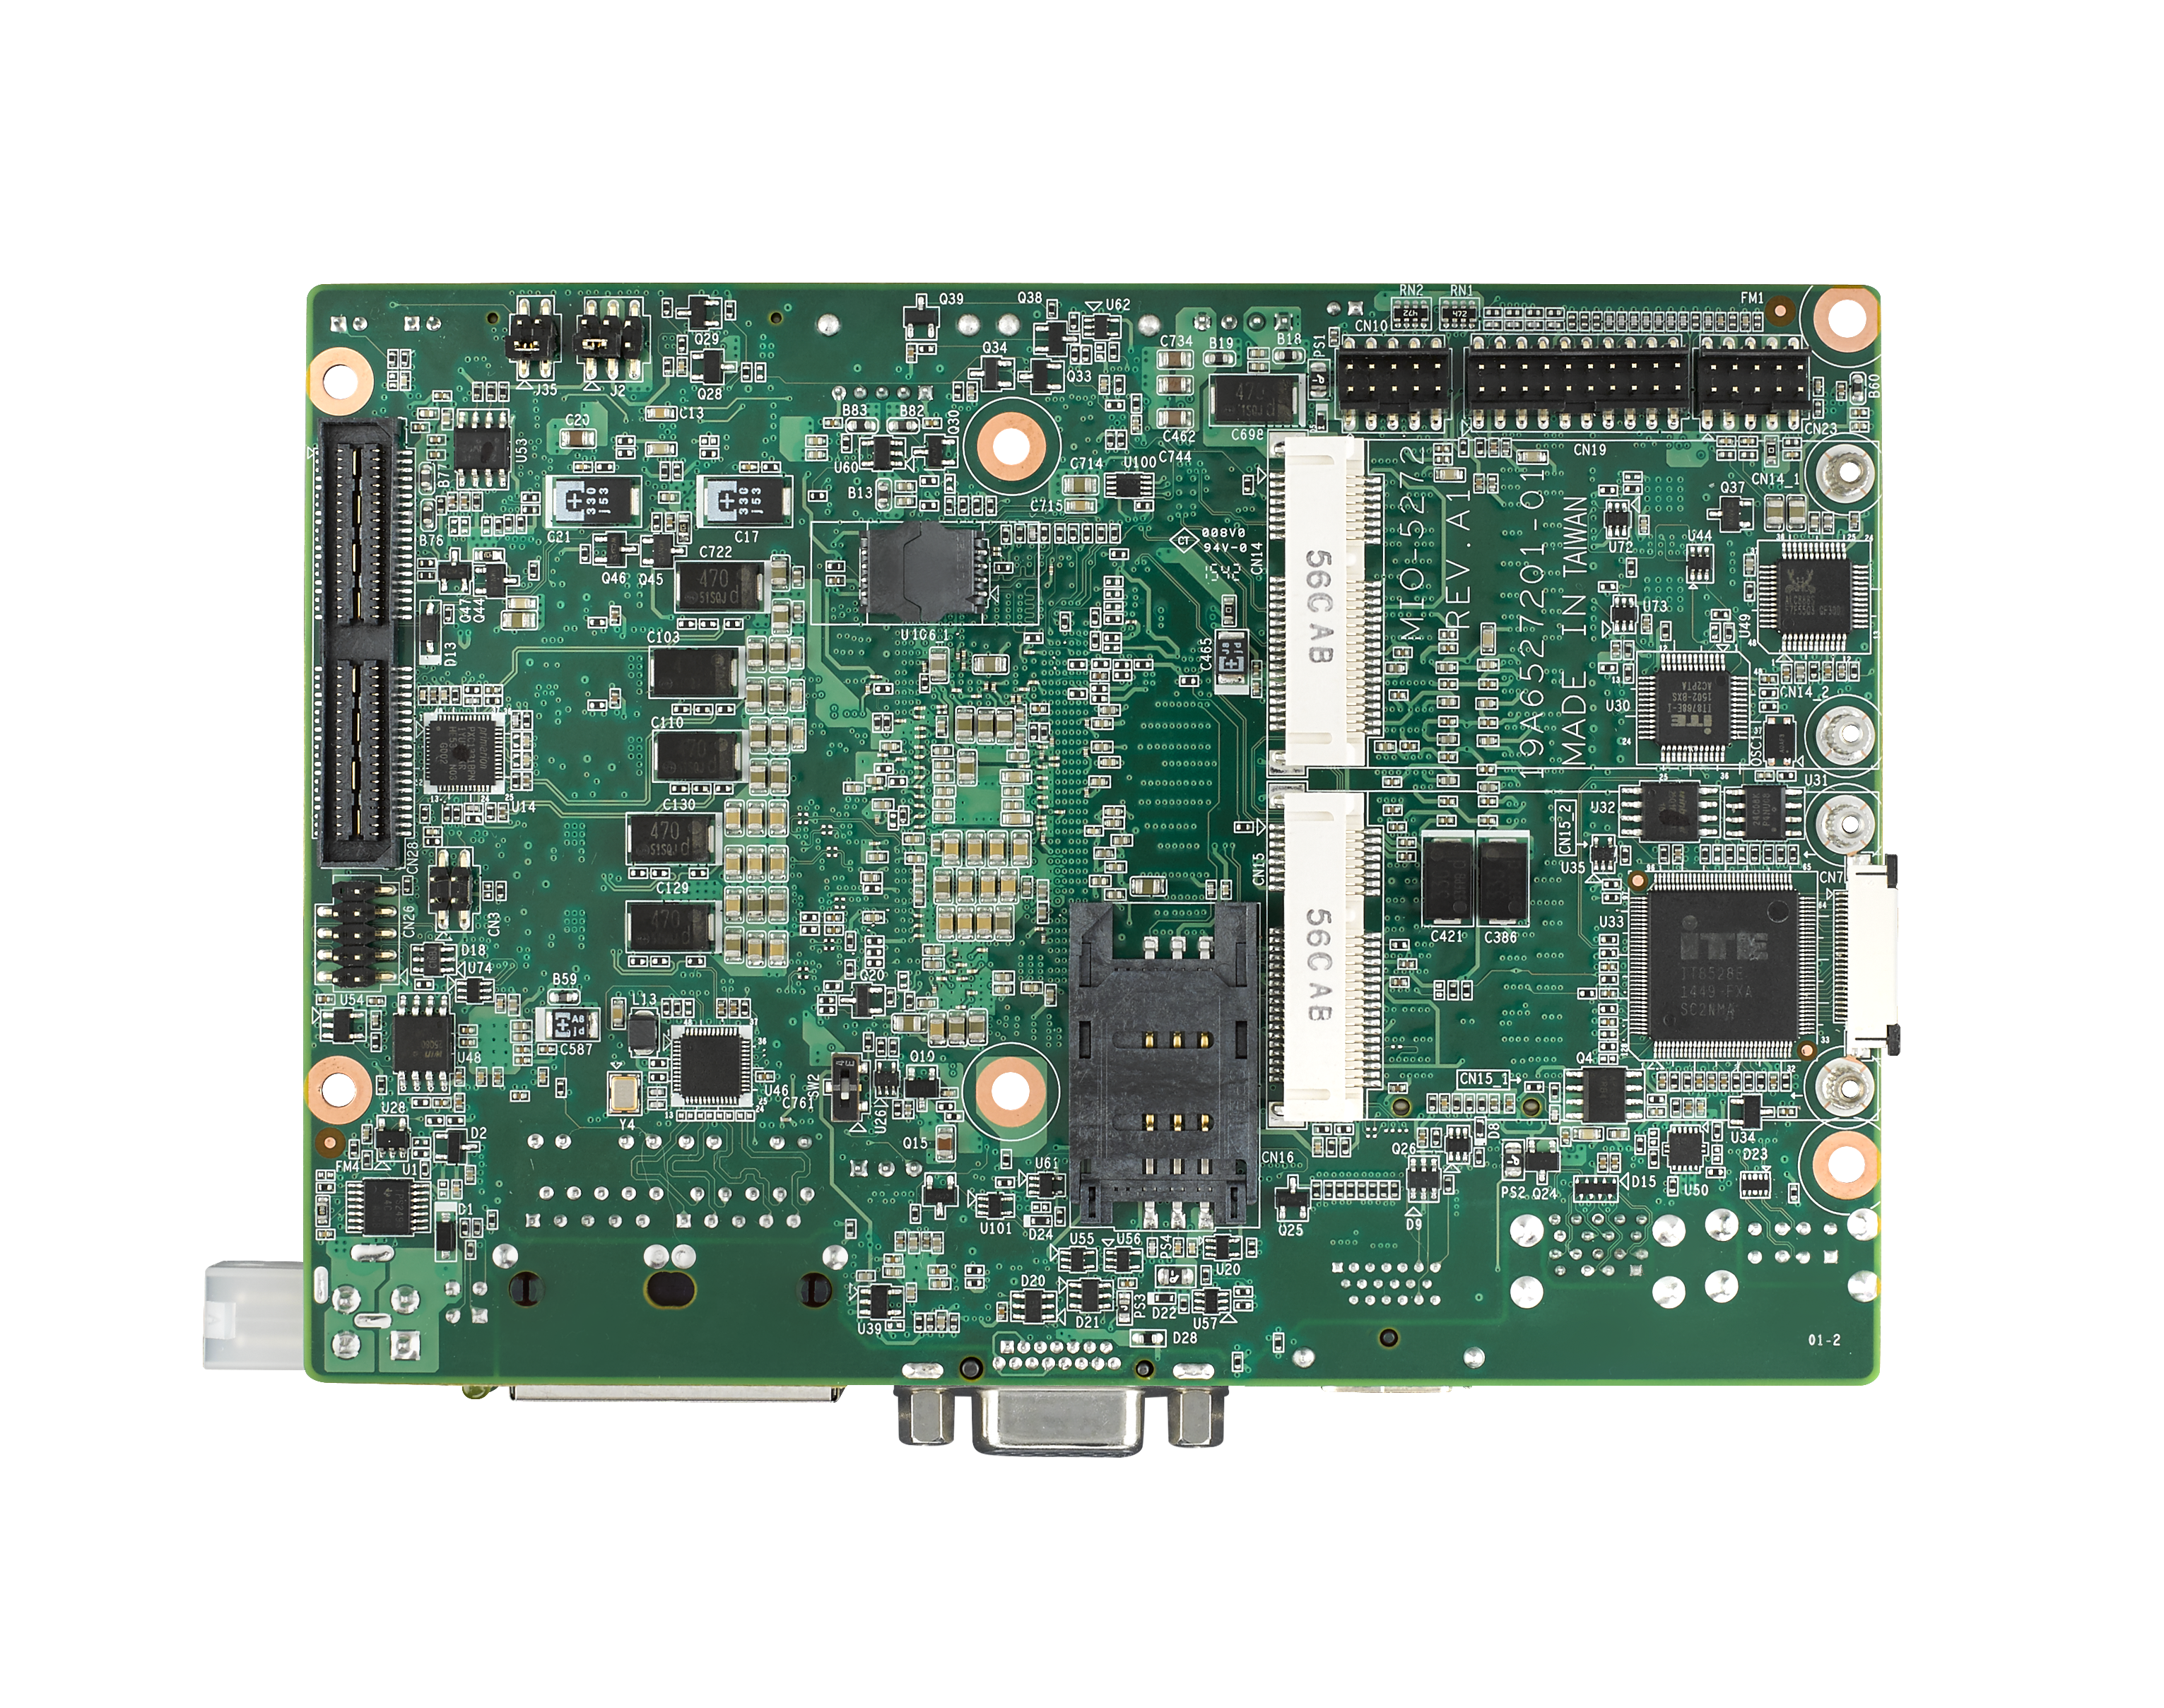 "6th Gen i5 6300U 3.5"" Compact SBC with DDR3L, VGA, HDMI, 48-bit LVDS, 2 GbE, 